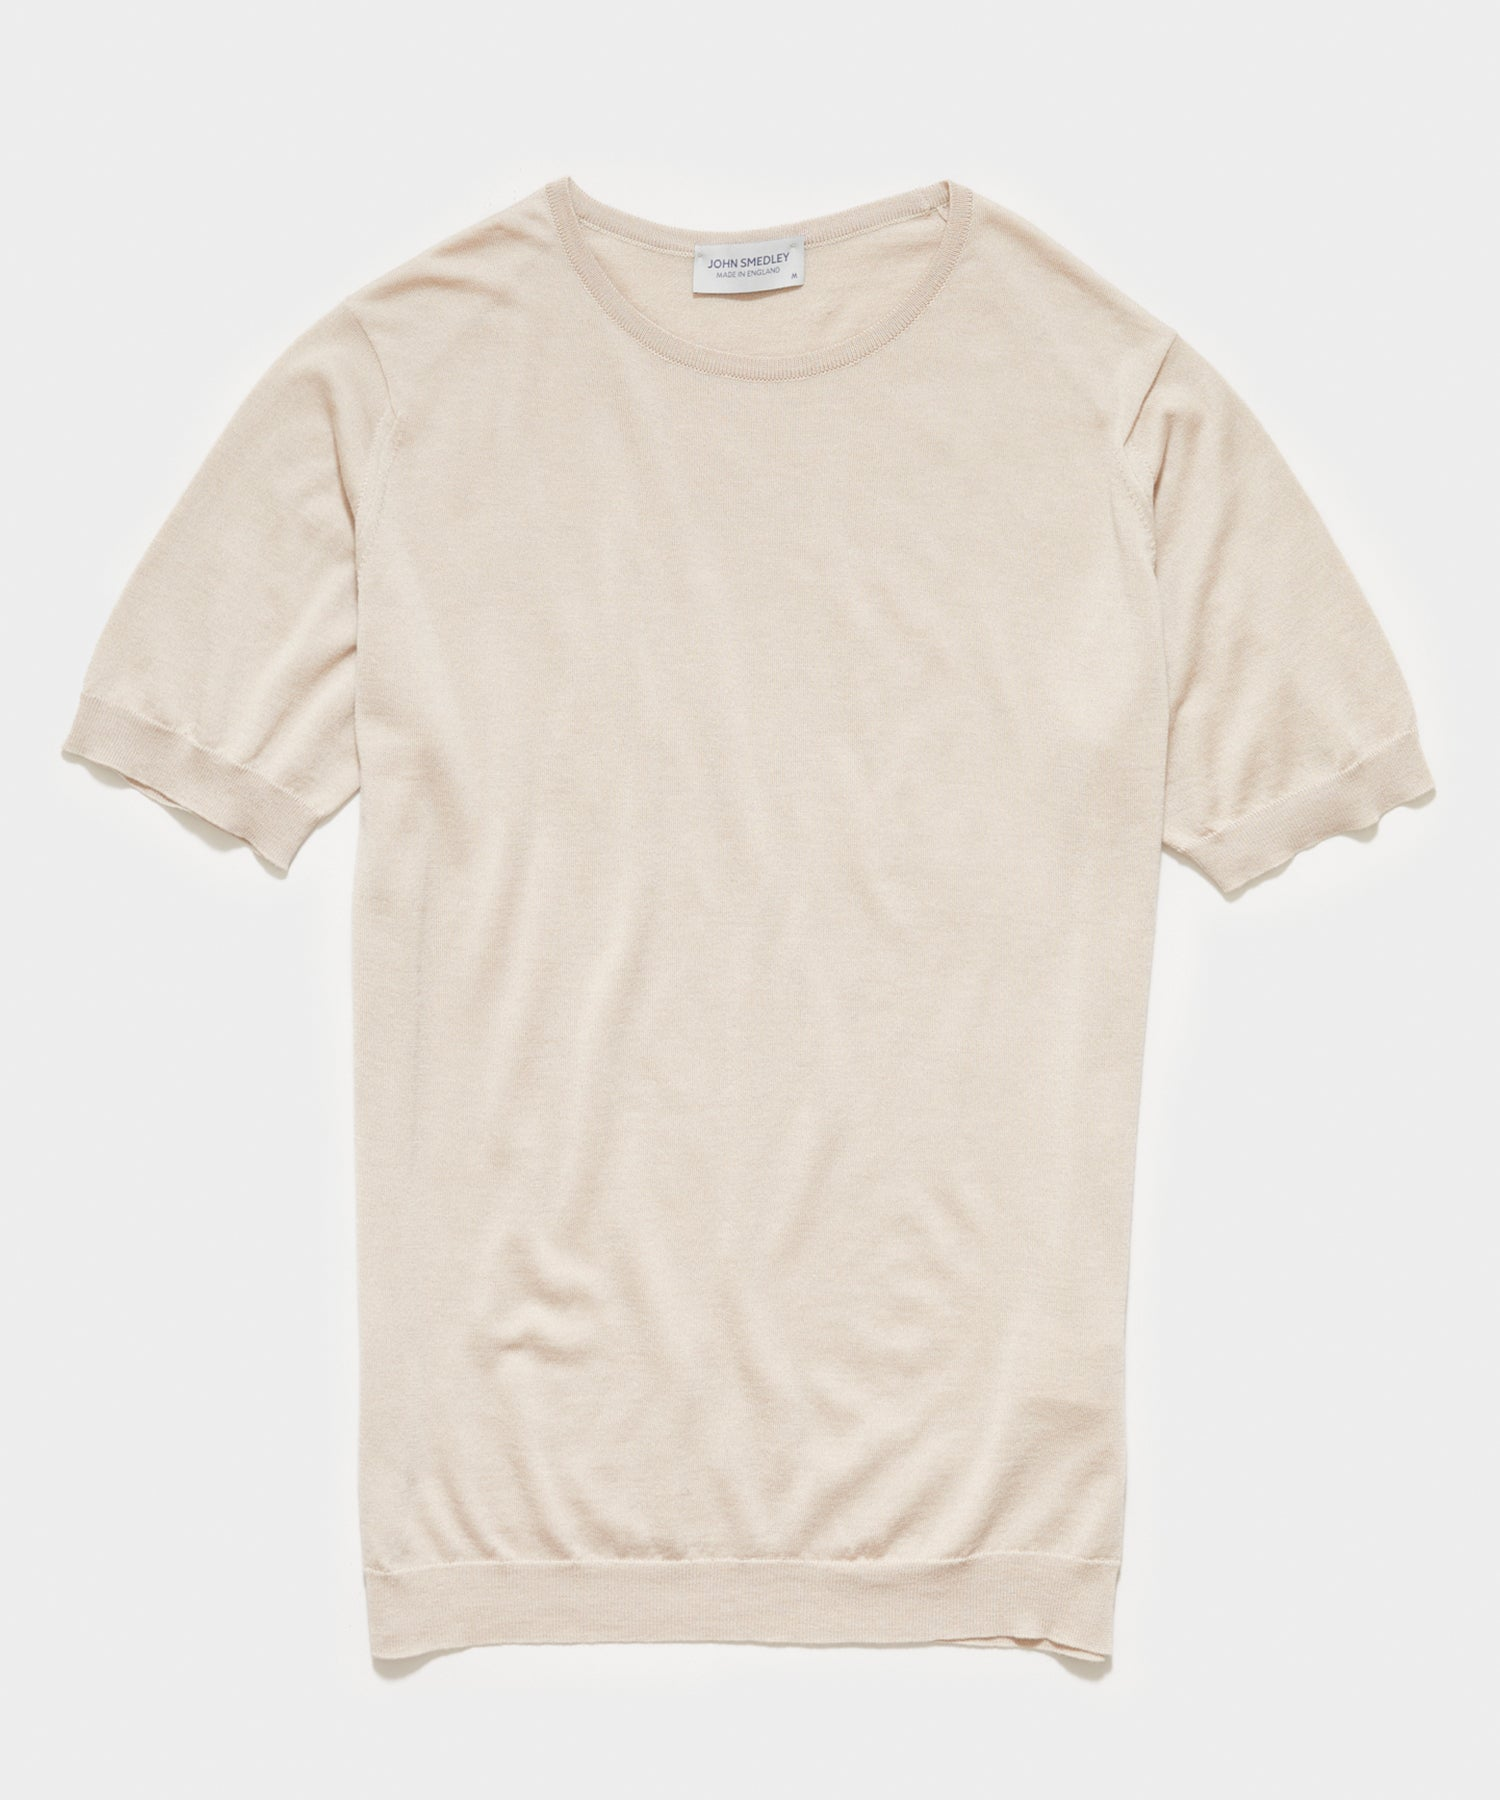 John Smedley Belden Sea Island Cotton T-shirt in Khaki